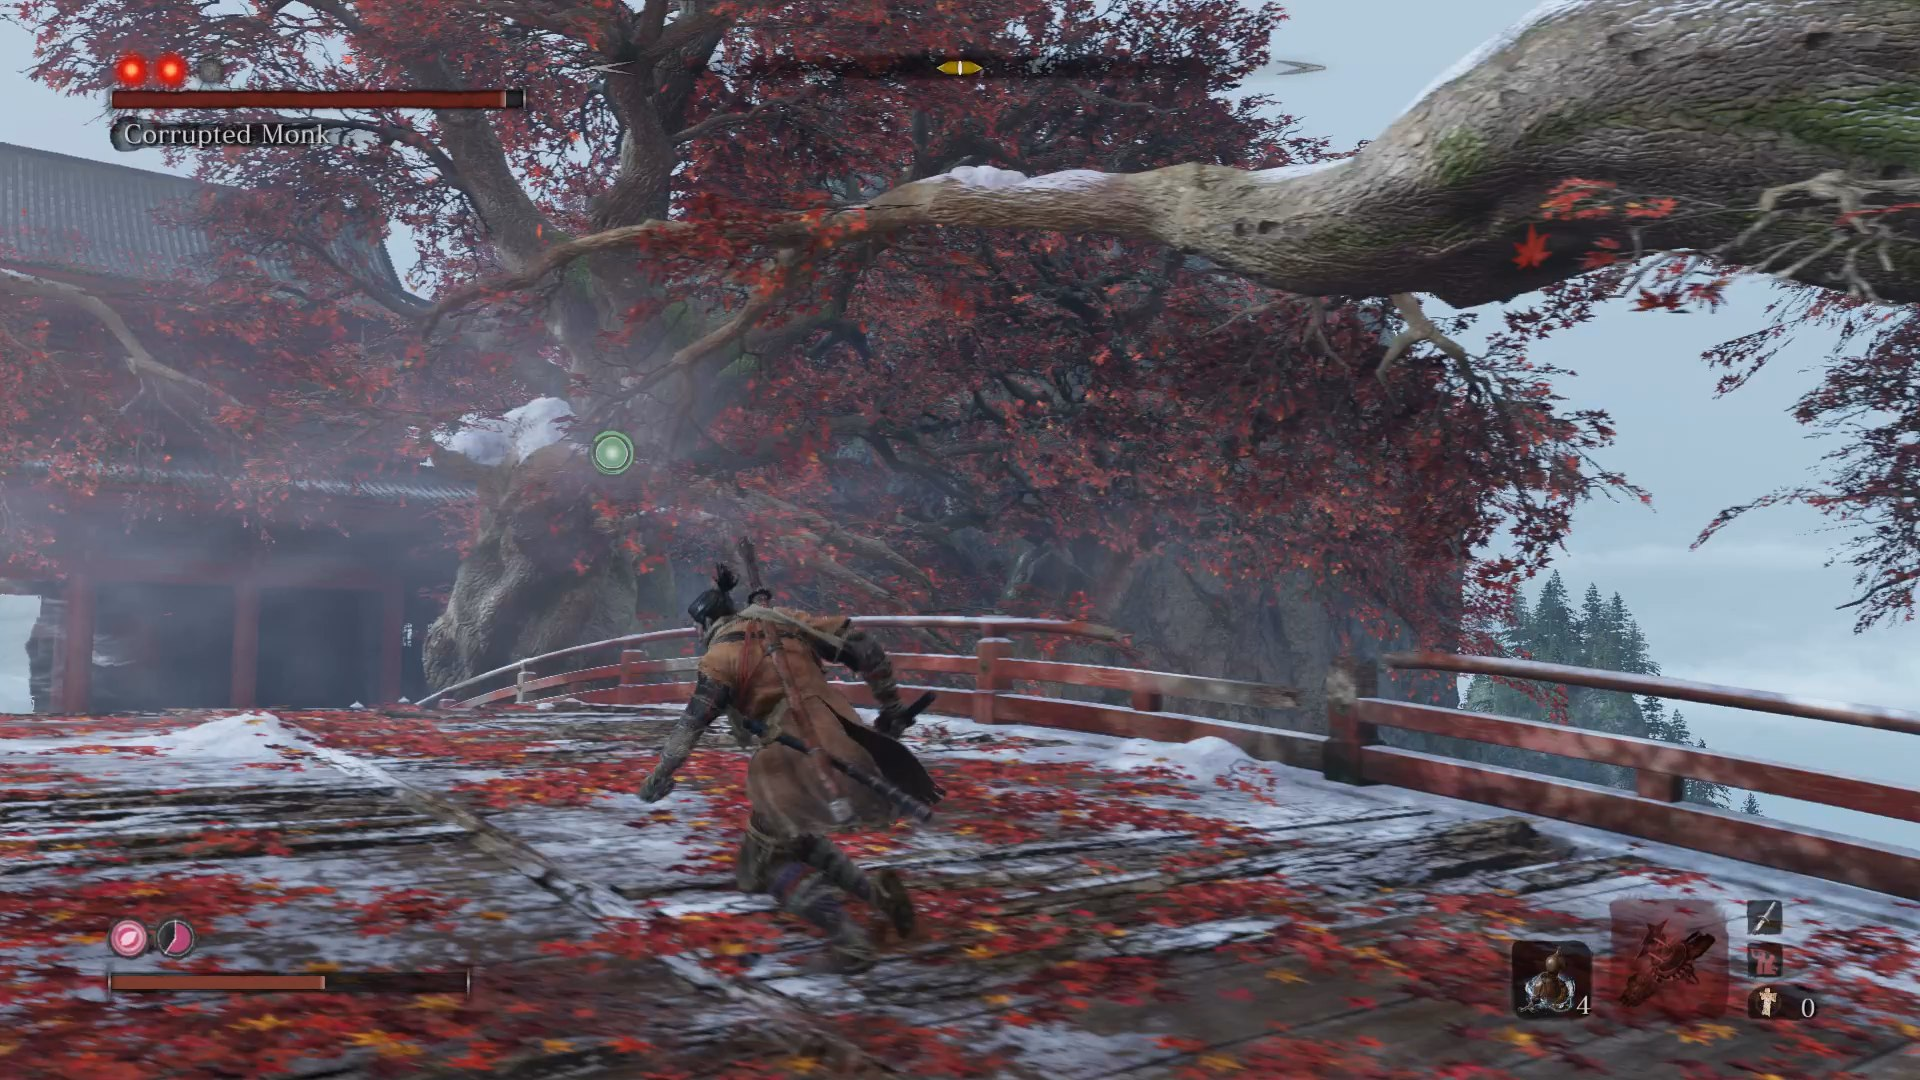 Sekiro Corrupted Monk - How to Beat the Corrupted Monk Easily | USgamer